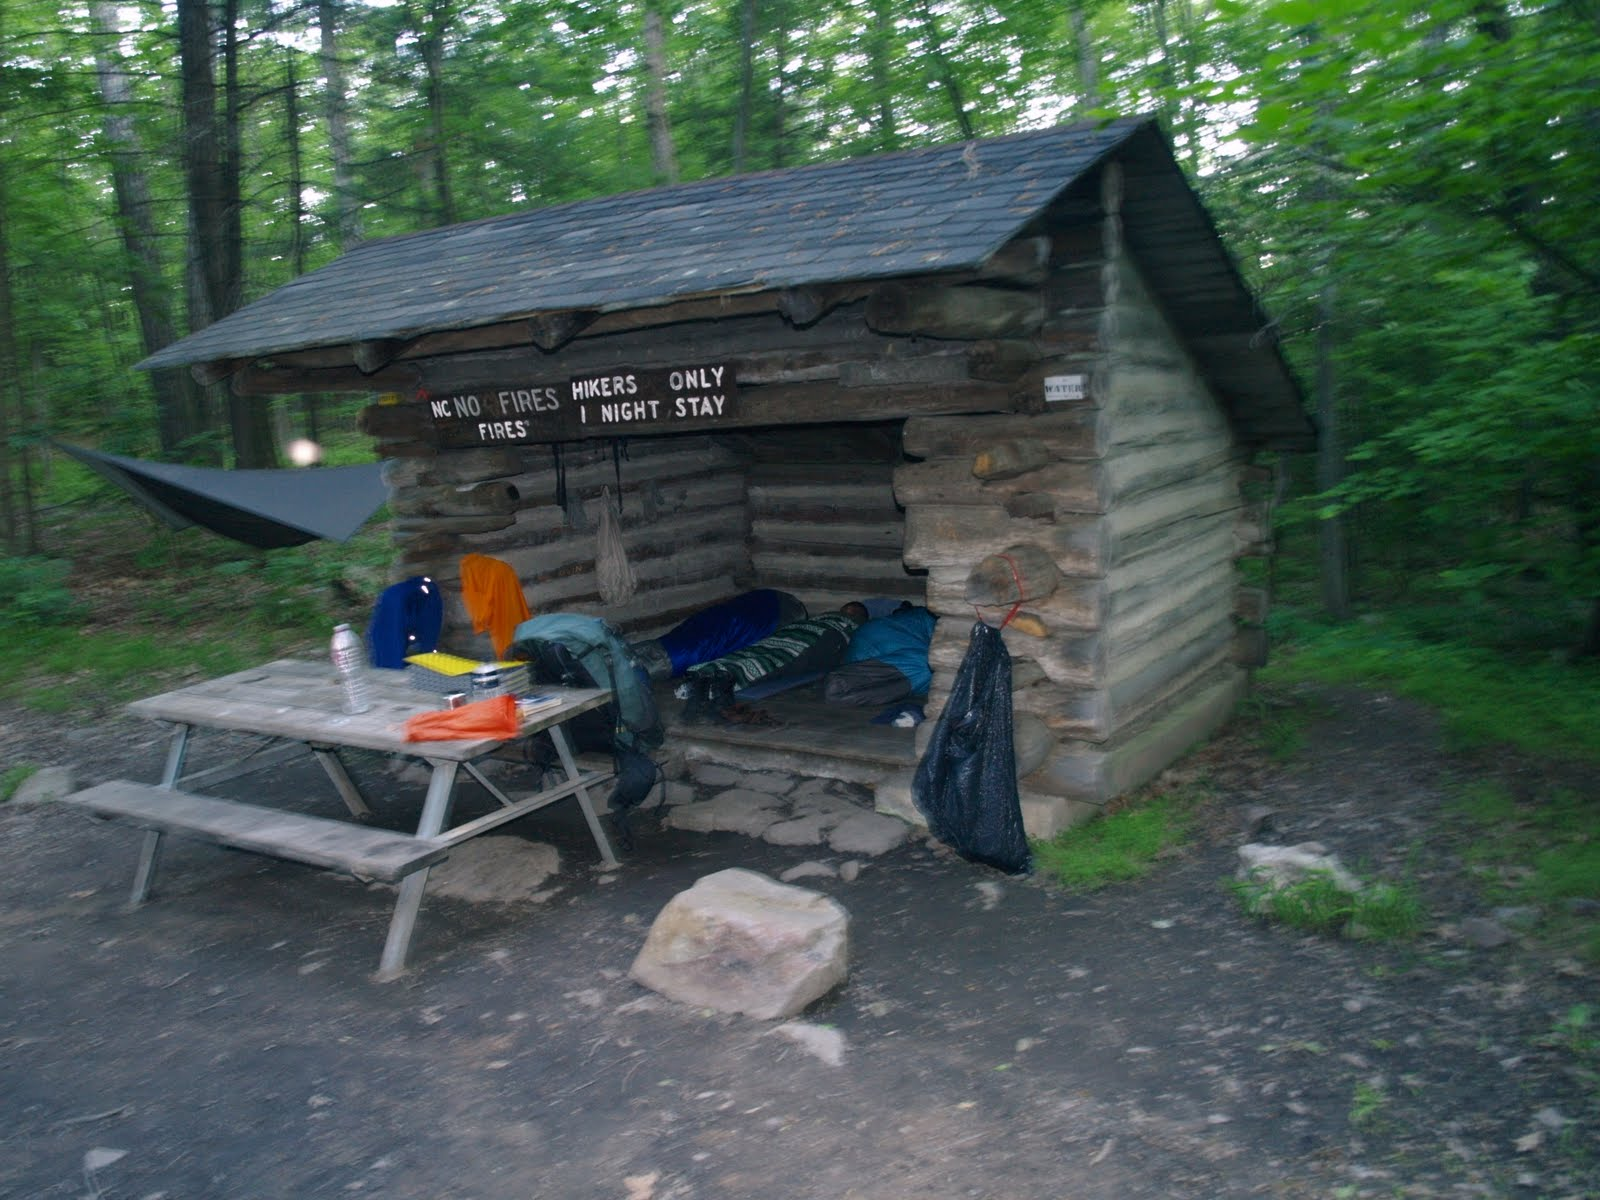 Can not deer lick shelter on appalachian trail congratulate, remarkable